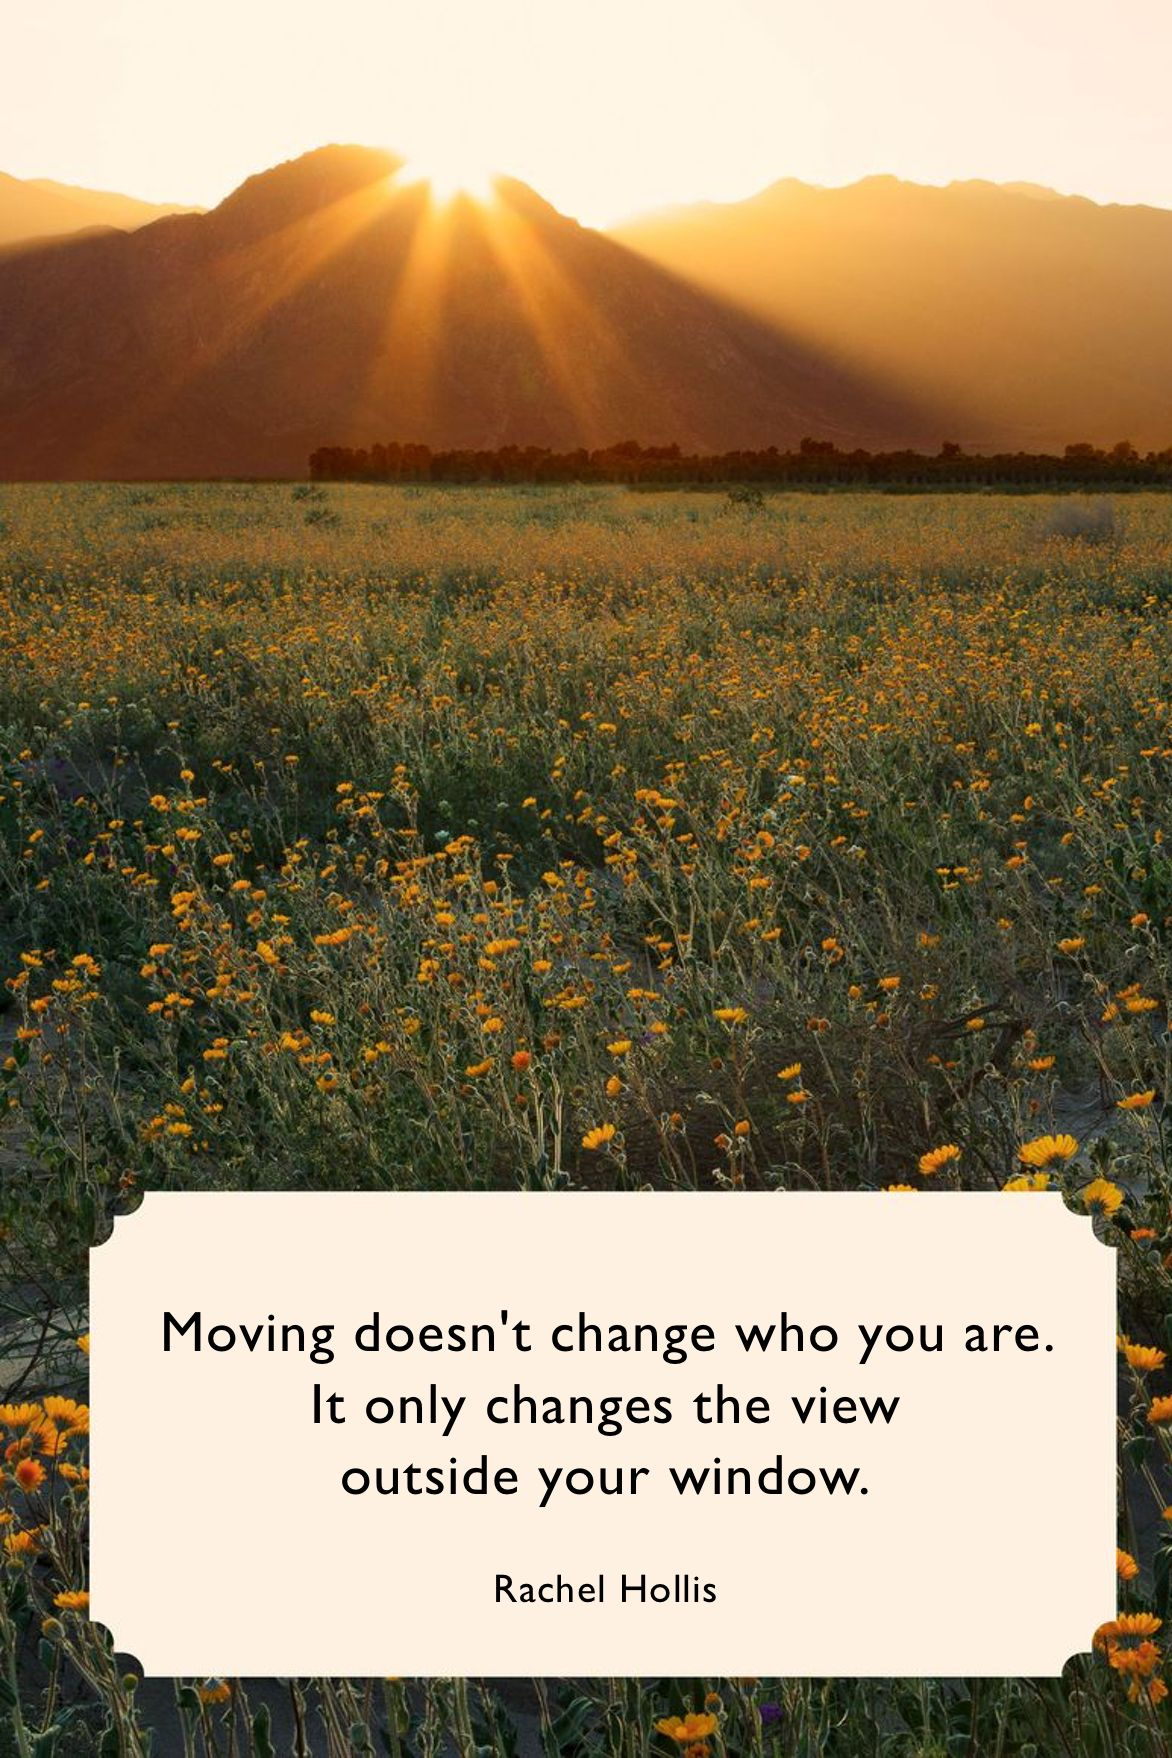 4 Best Quotes About Change - Inspiring Sayings to Navigate Life